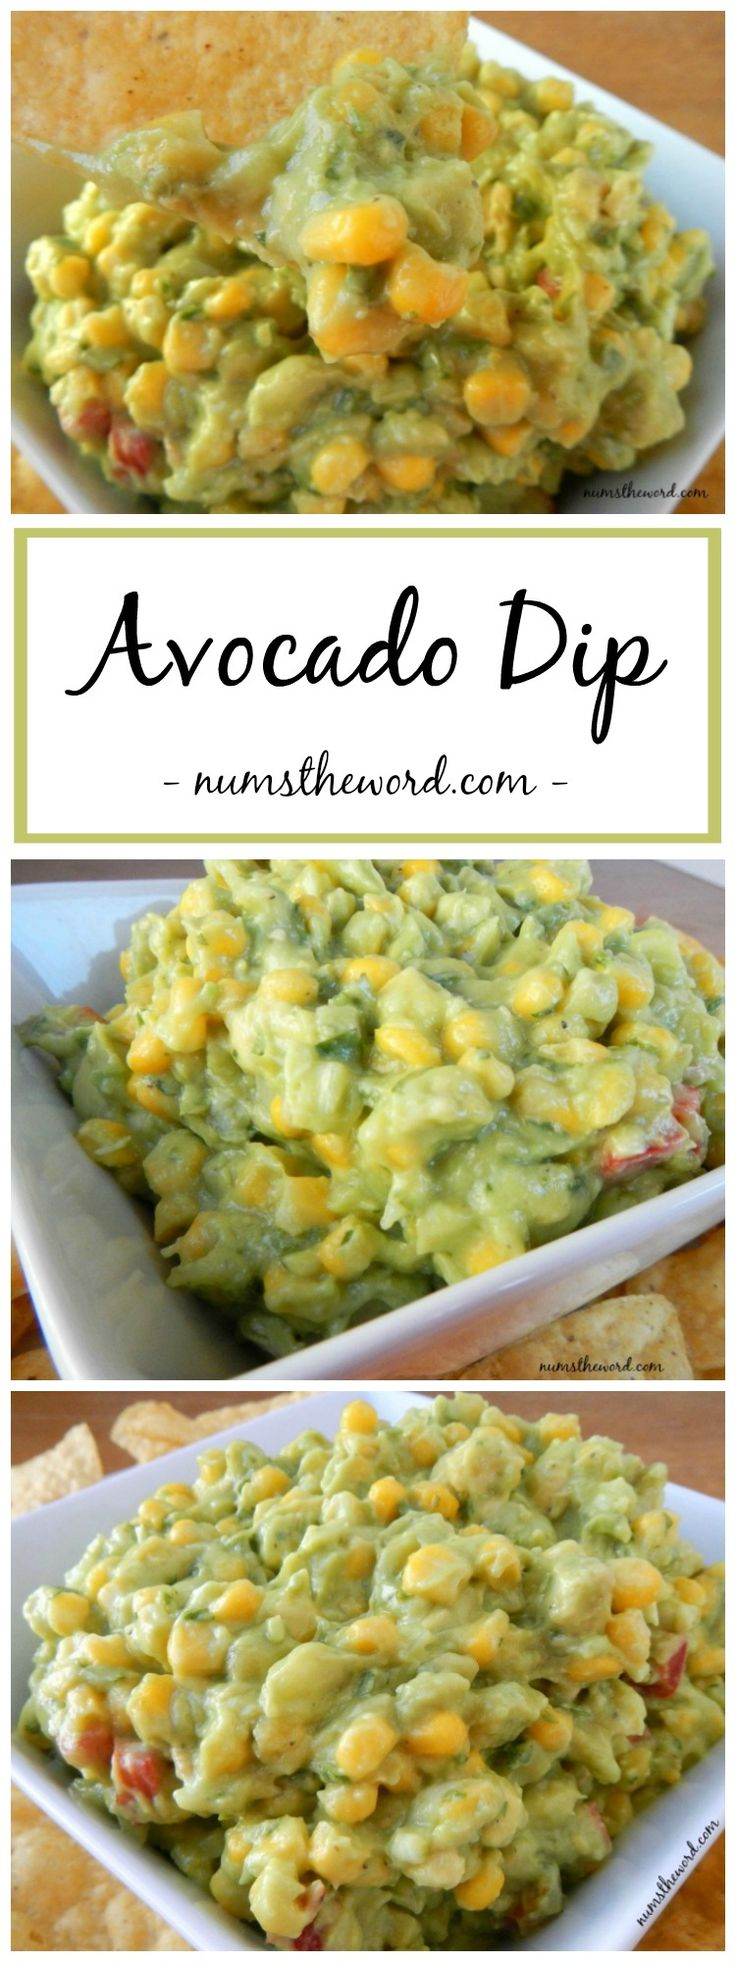 This Avocado Dip is hands down my new favorite go-to snack. Tasty Avocado and sweet corn and cilantro give this a sweet & tasty flavor! Great as a dip or topping to your favorite dish!